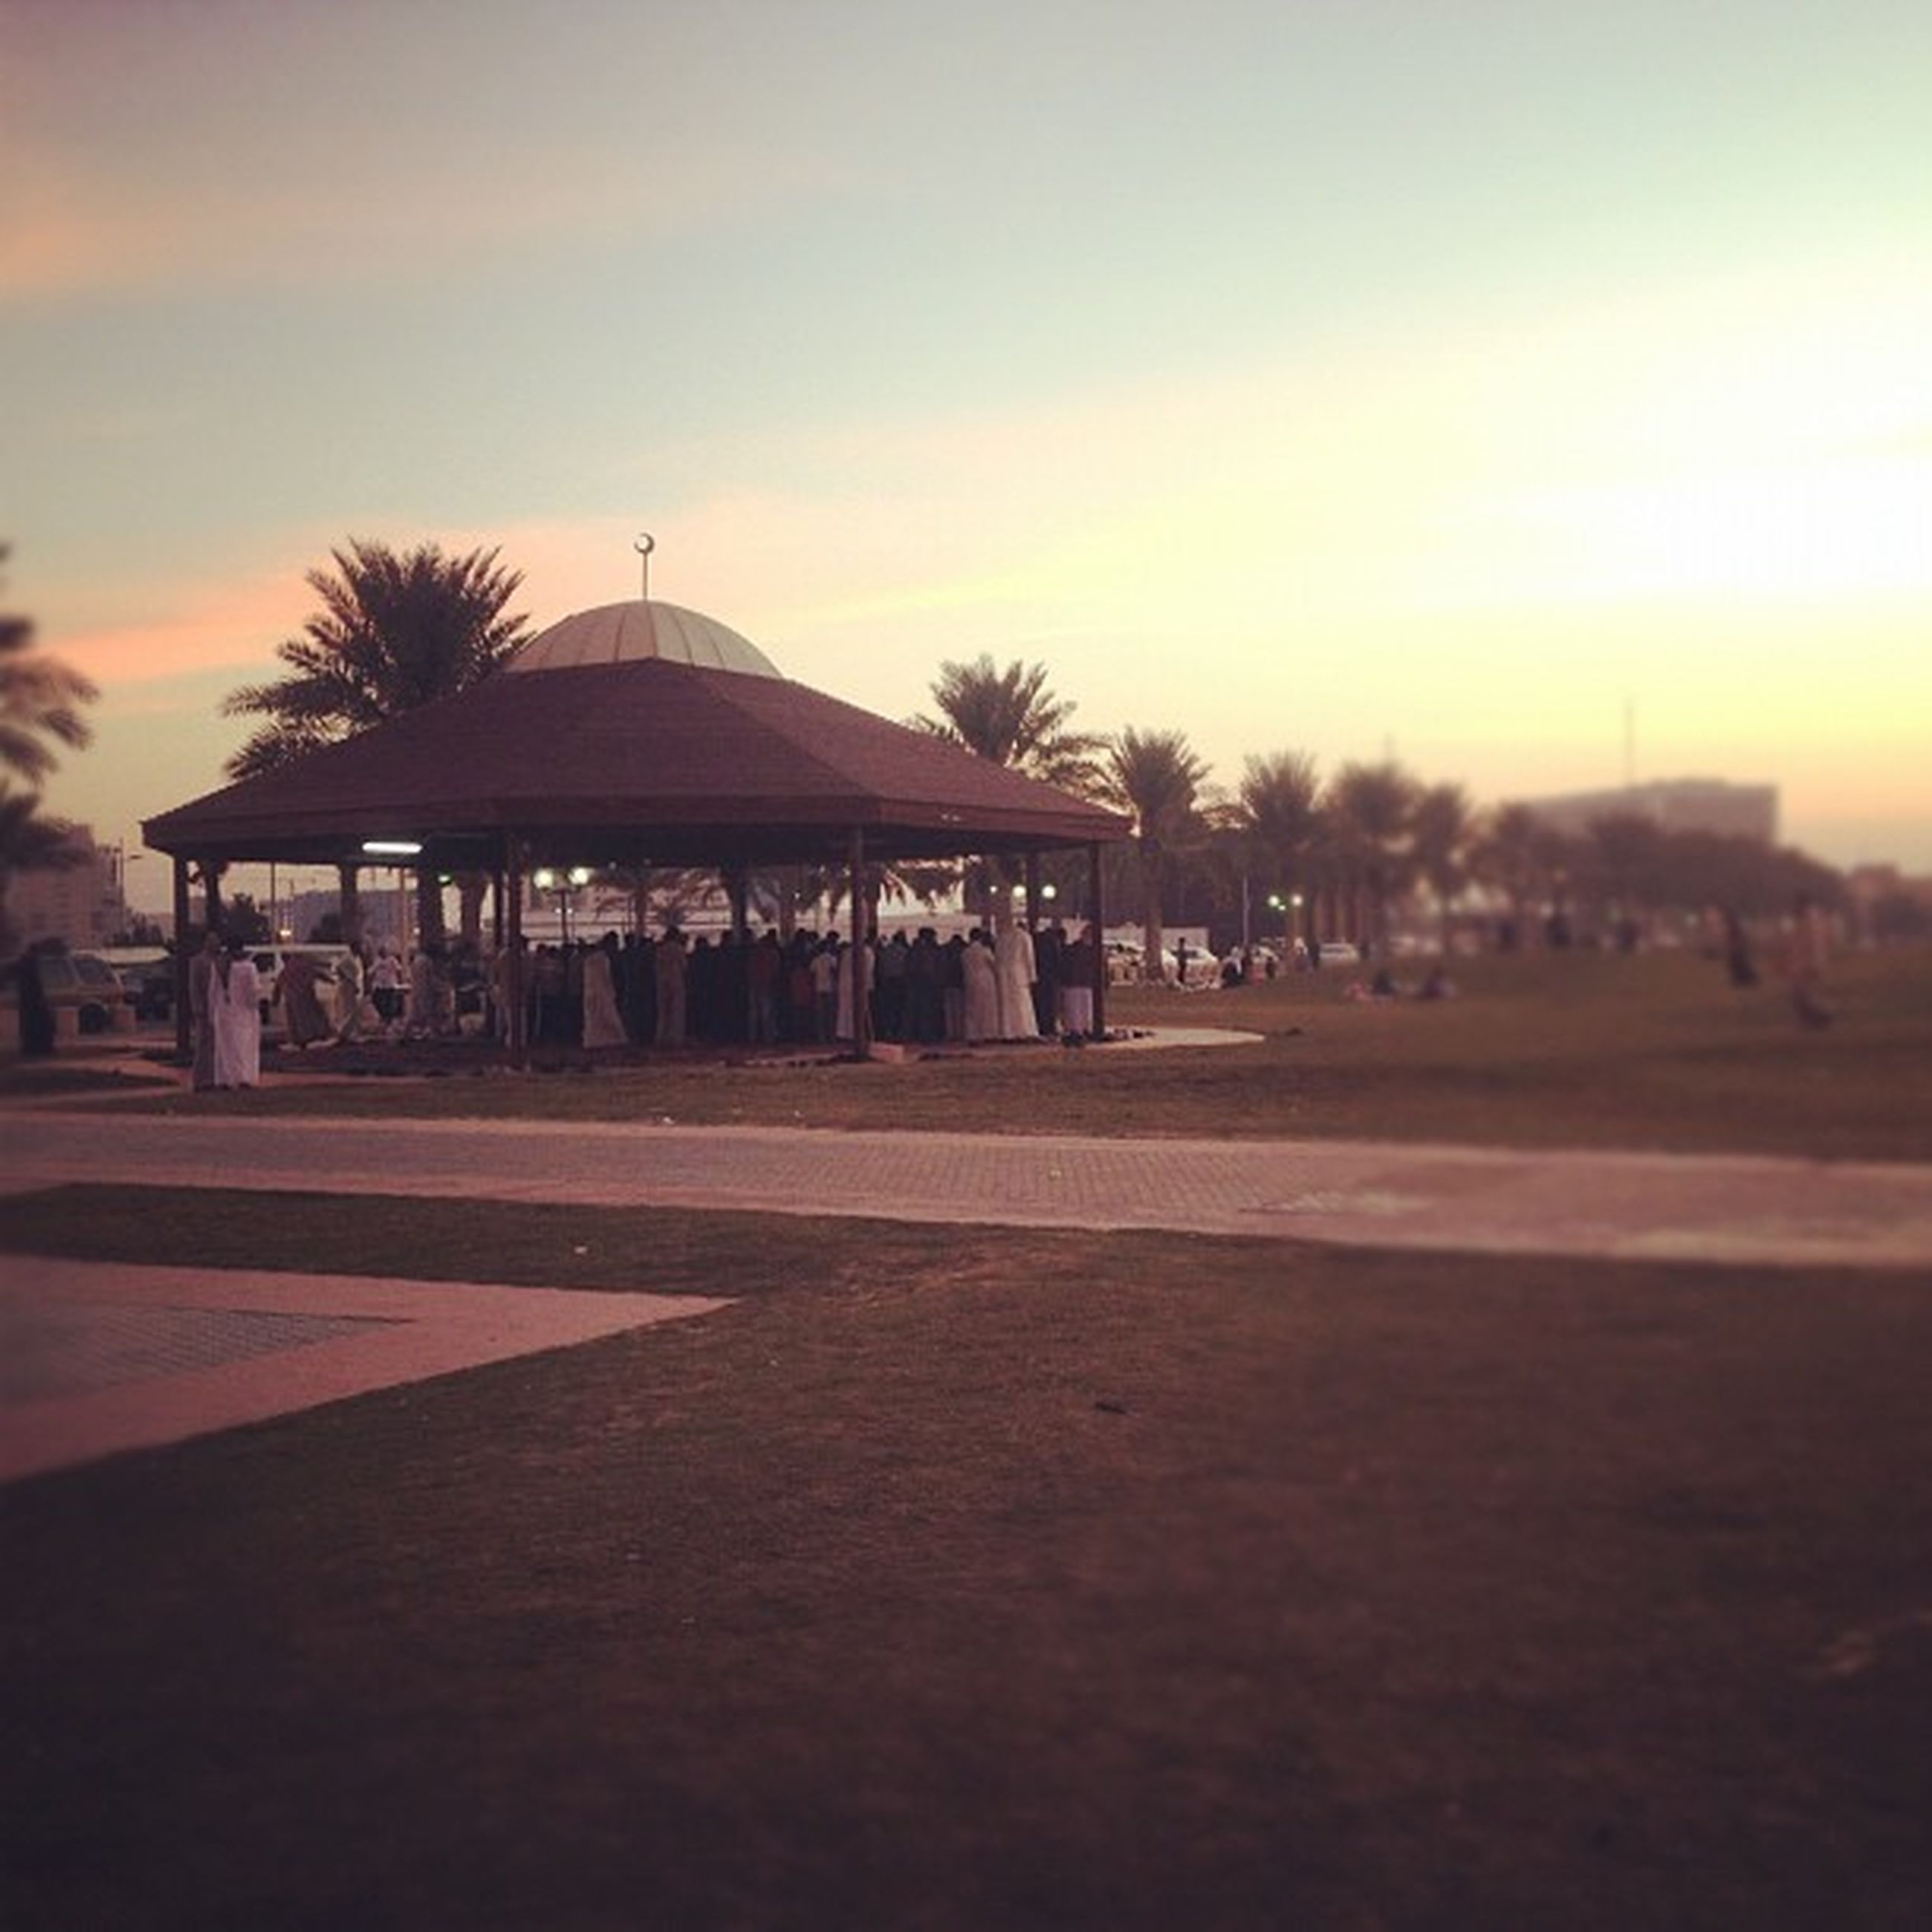 sunset, building exterior, sky, architecture, built structure, tree, incidental people, large group of people, palm tree, dusk, outdoors, beach, city, street, water, street light, lifestyles, person, sea